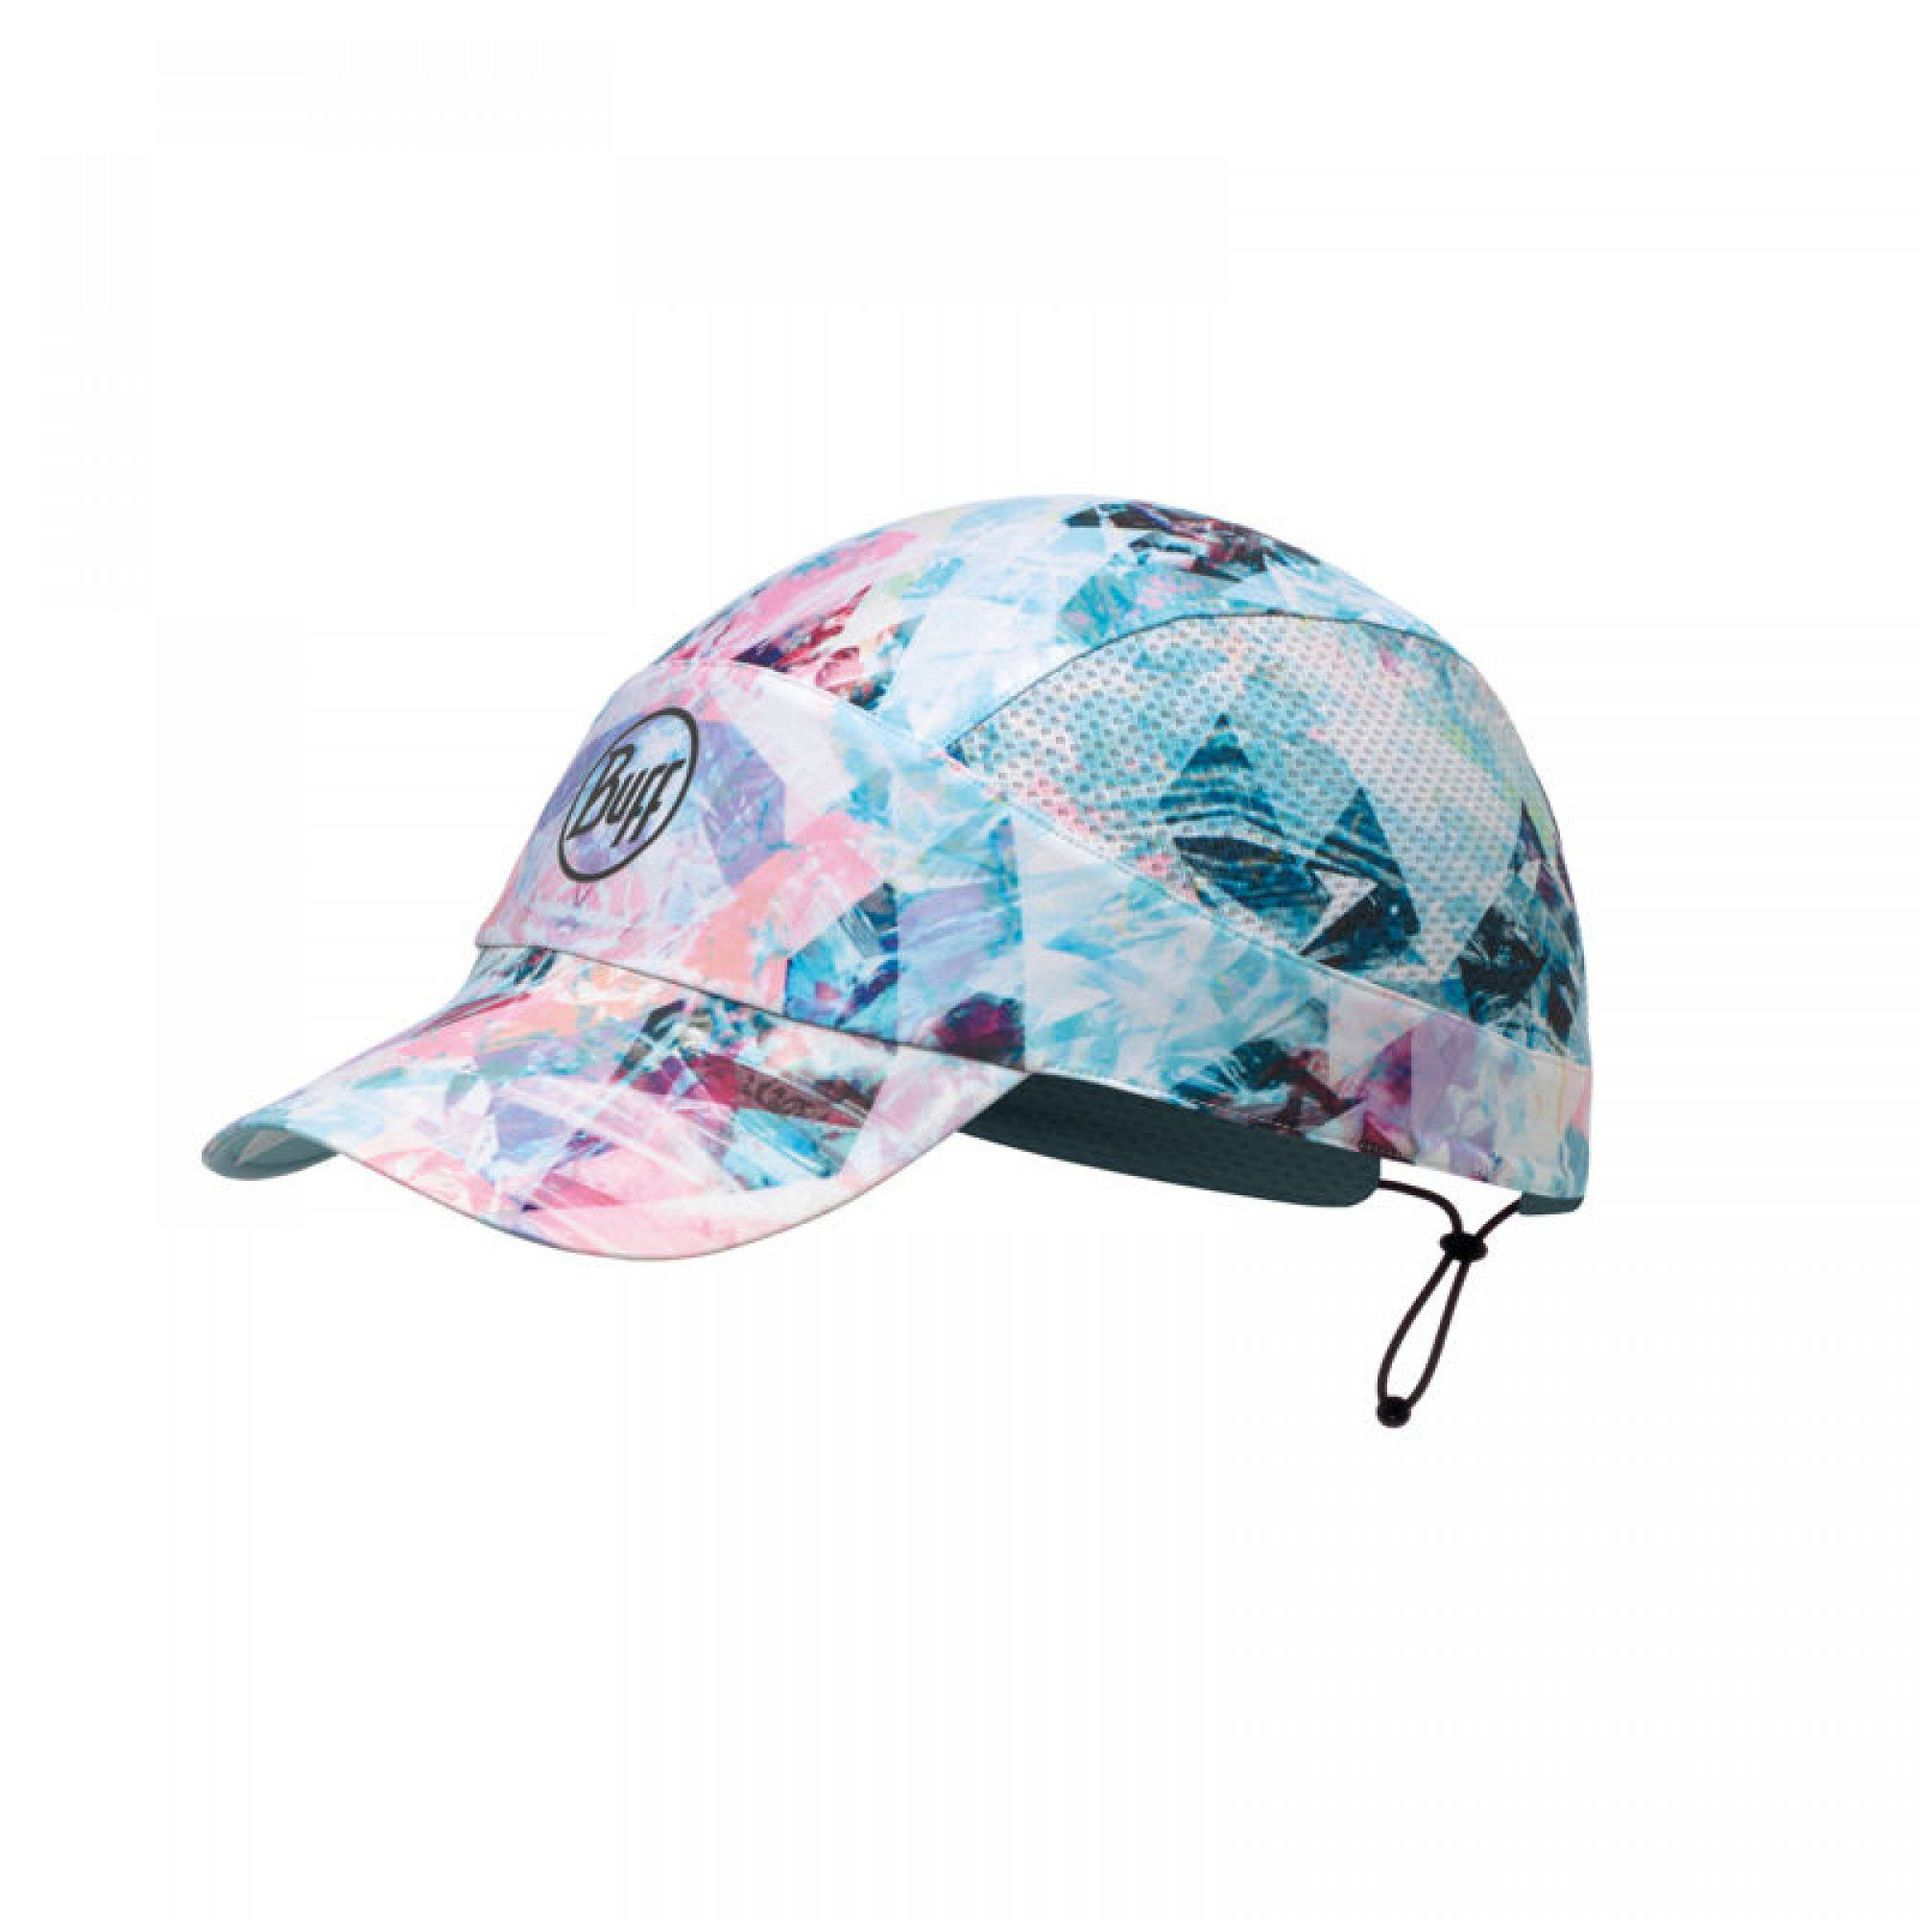 CZAPKA Z DASZKIEM BUFF PRO RUN CAP R-IRISED AQUA